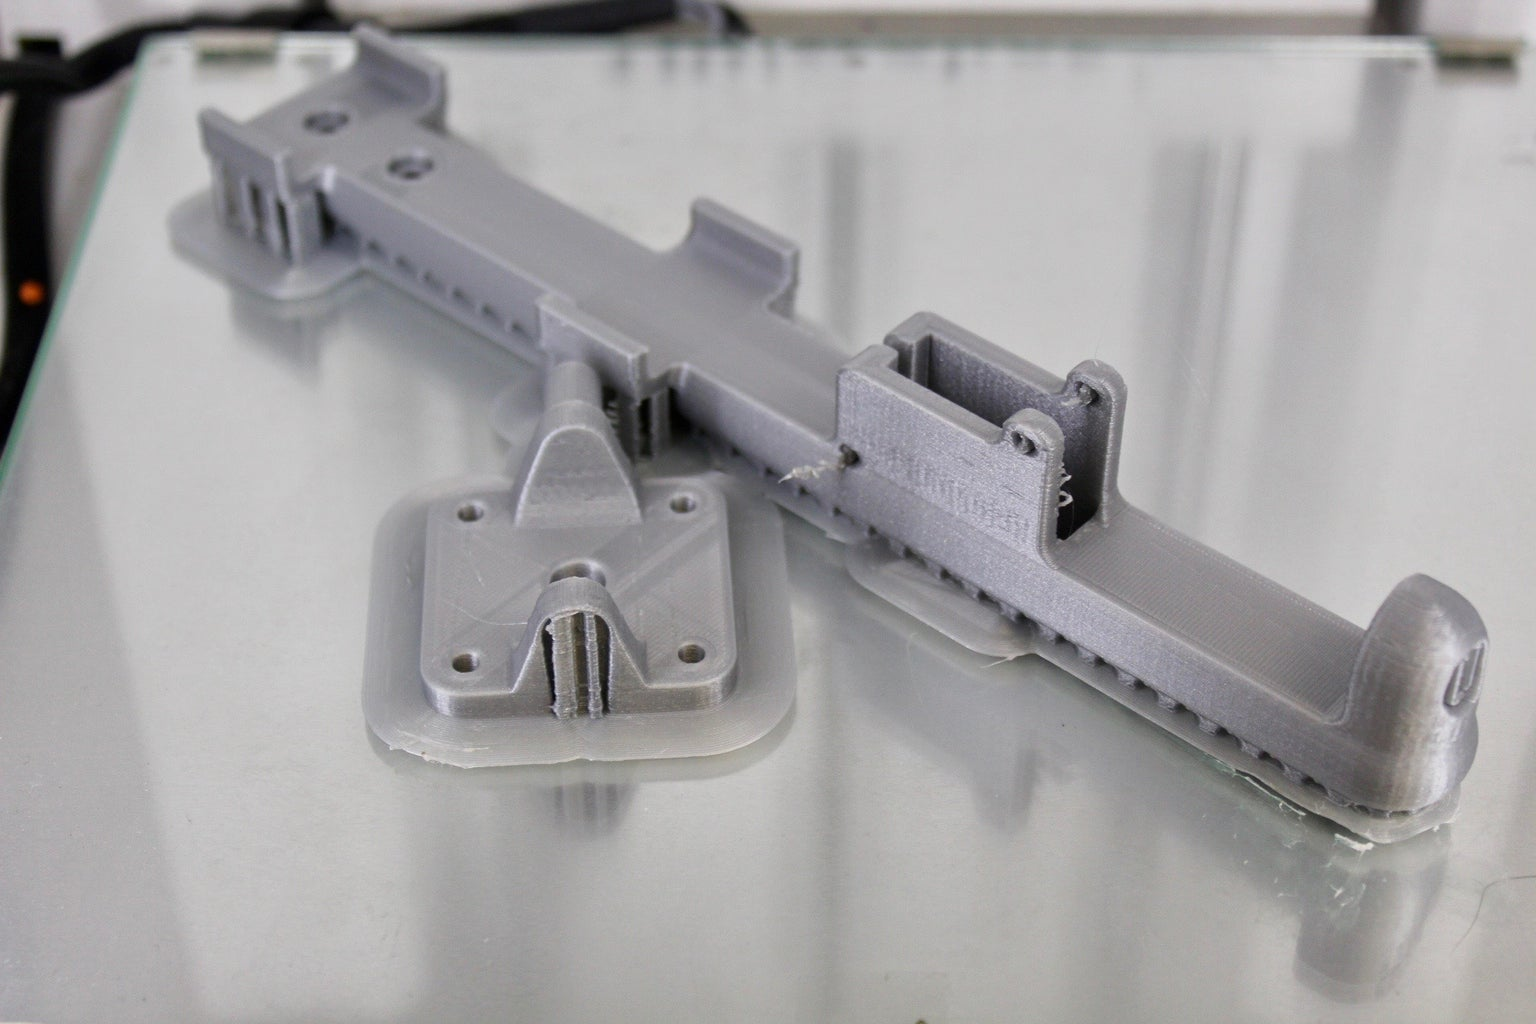 3D Printing the Tricopter Frame